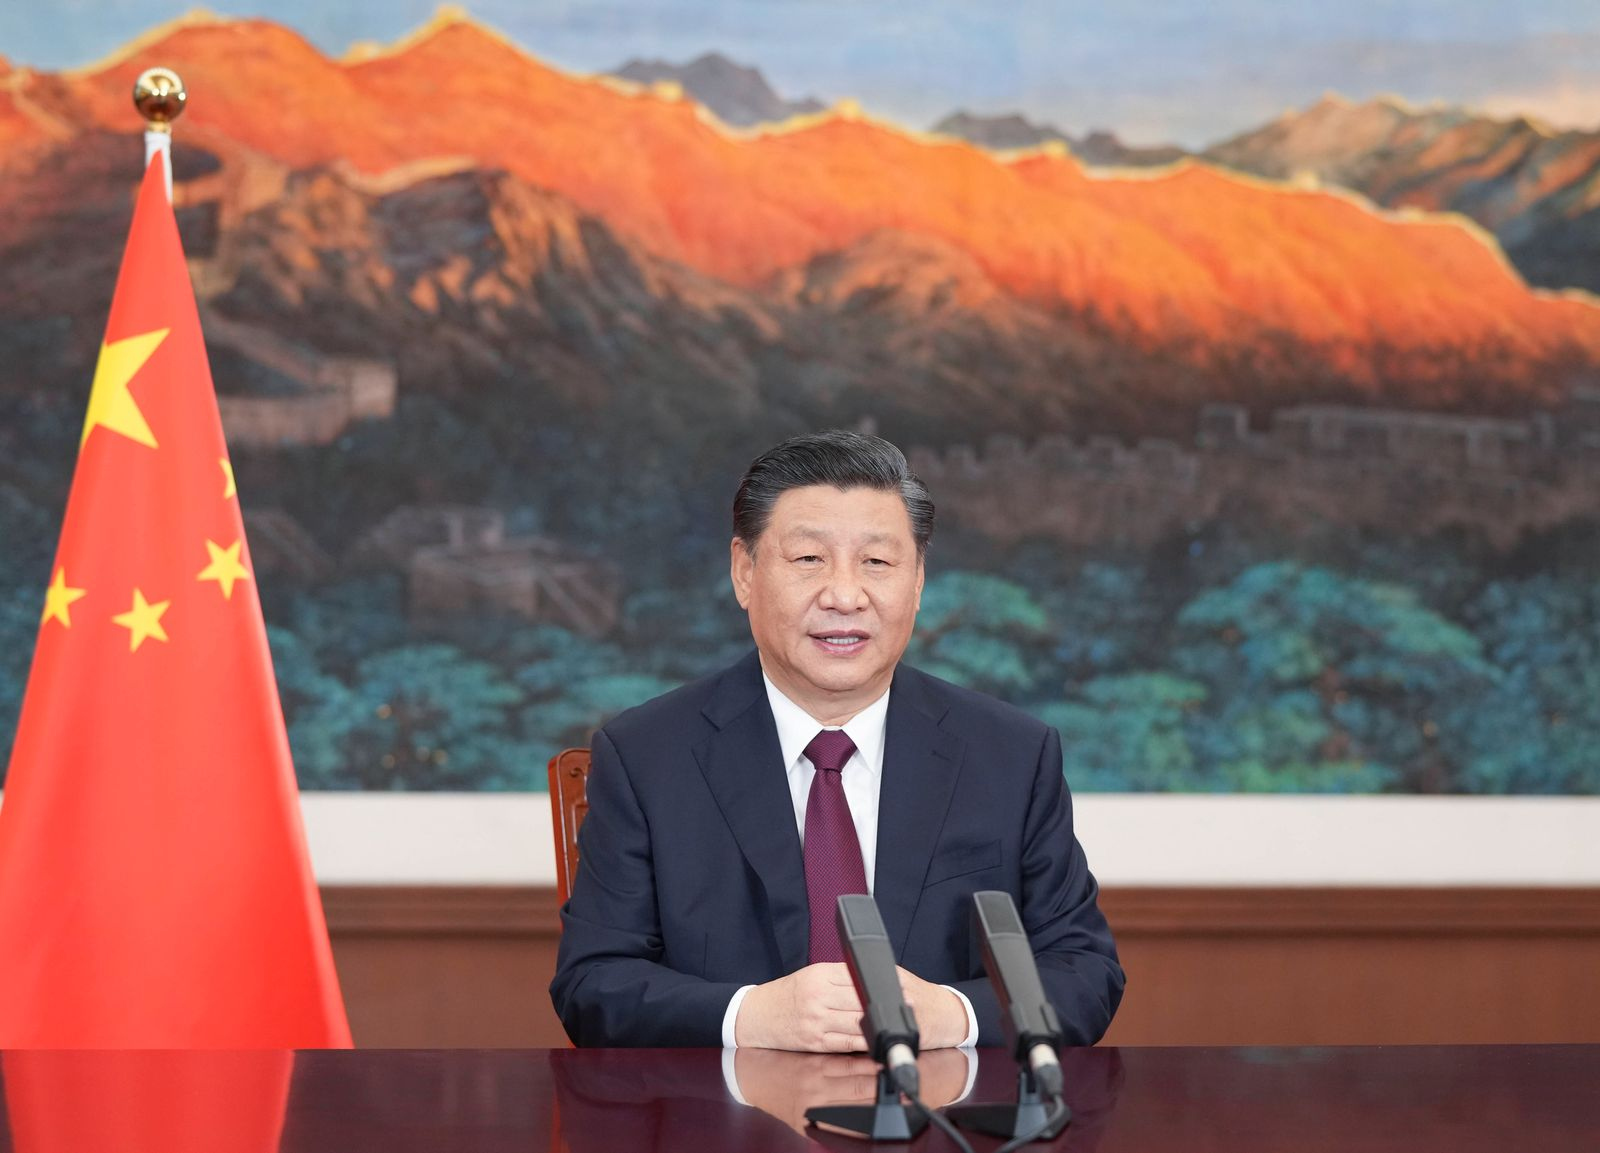 (210317) -- BEIJING, March 17, 2021 -- Chinese President Xi Jinping sends a video message to an event held by Bangladesh